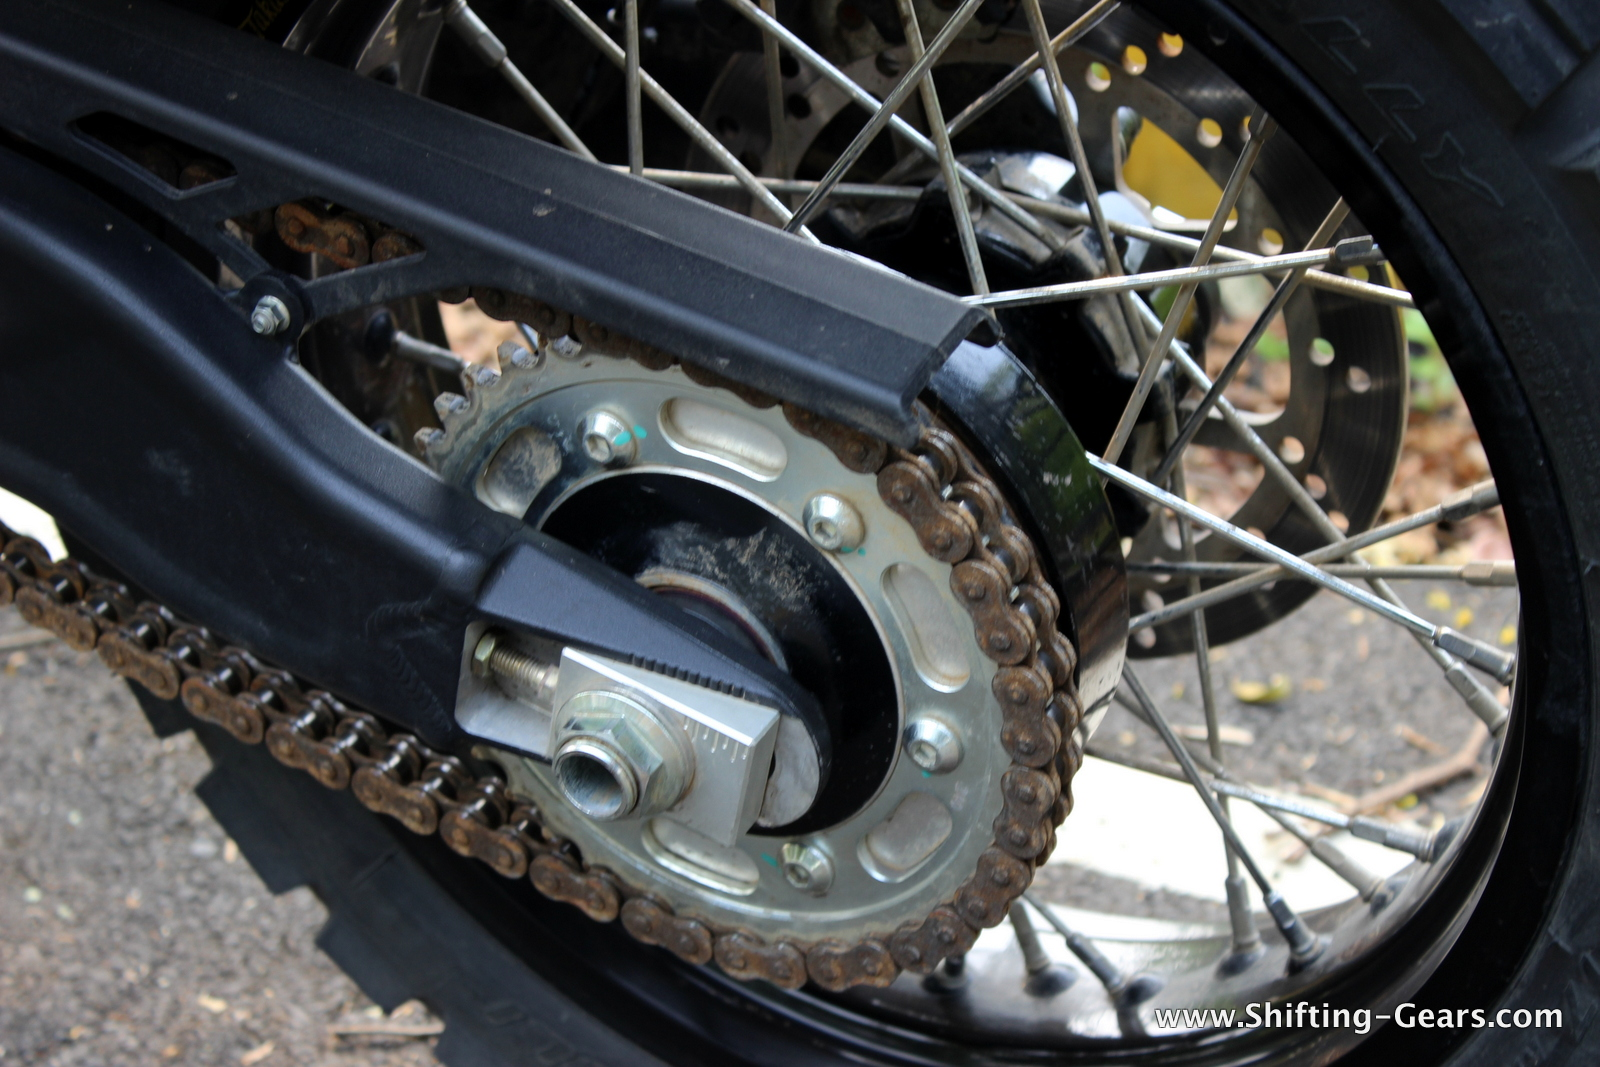 Close look at the chain cover, chain sprocket and chain adjustment lever